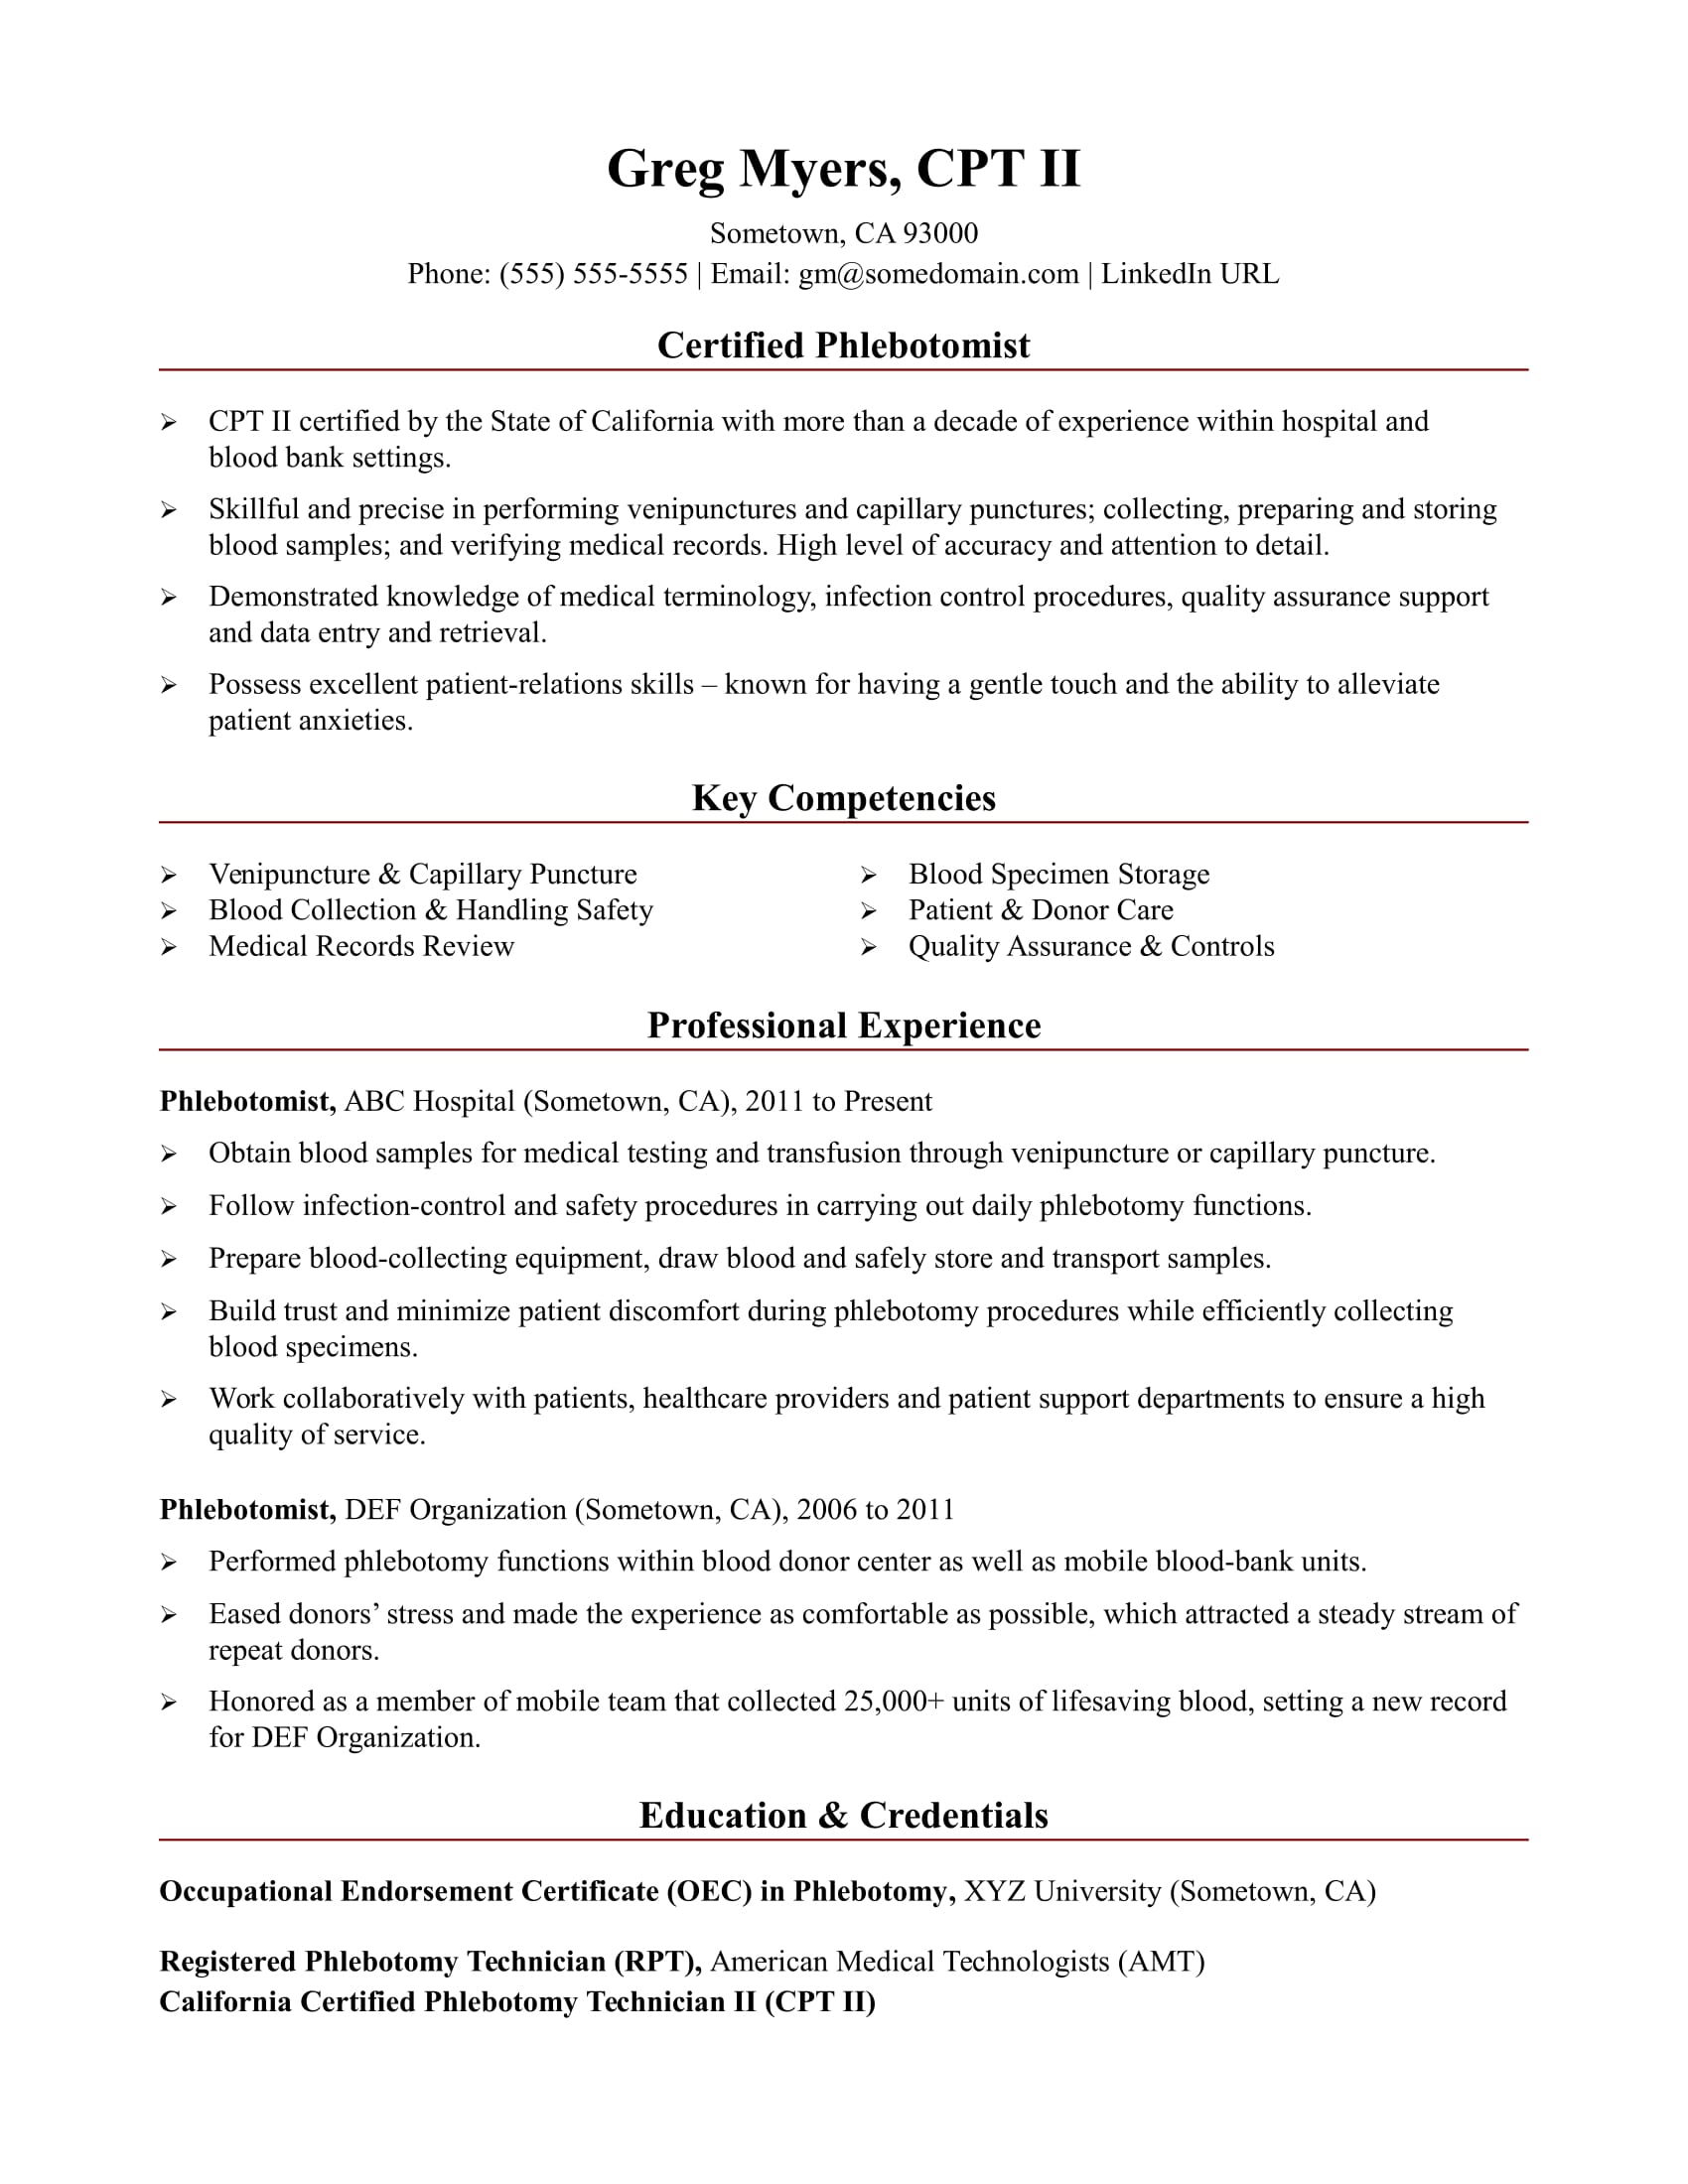 Perfect Sample Resume For A Phlebotomist Throughout Phlebotomist Resume Sample